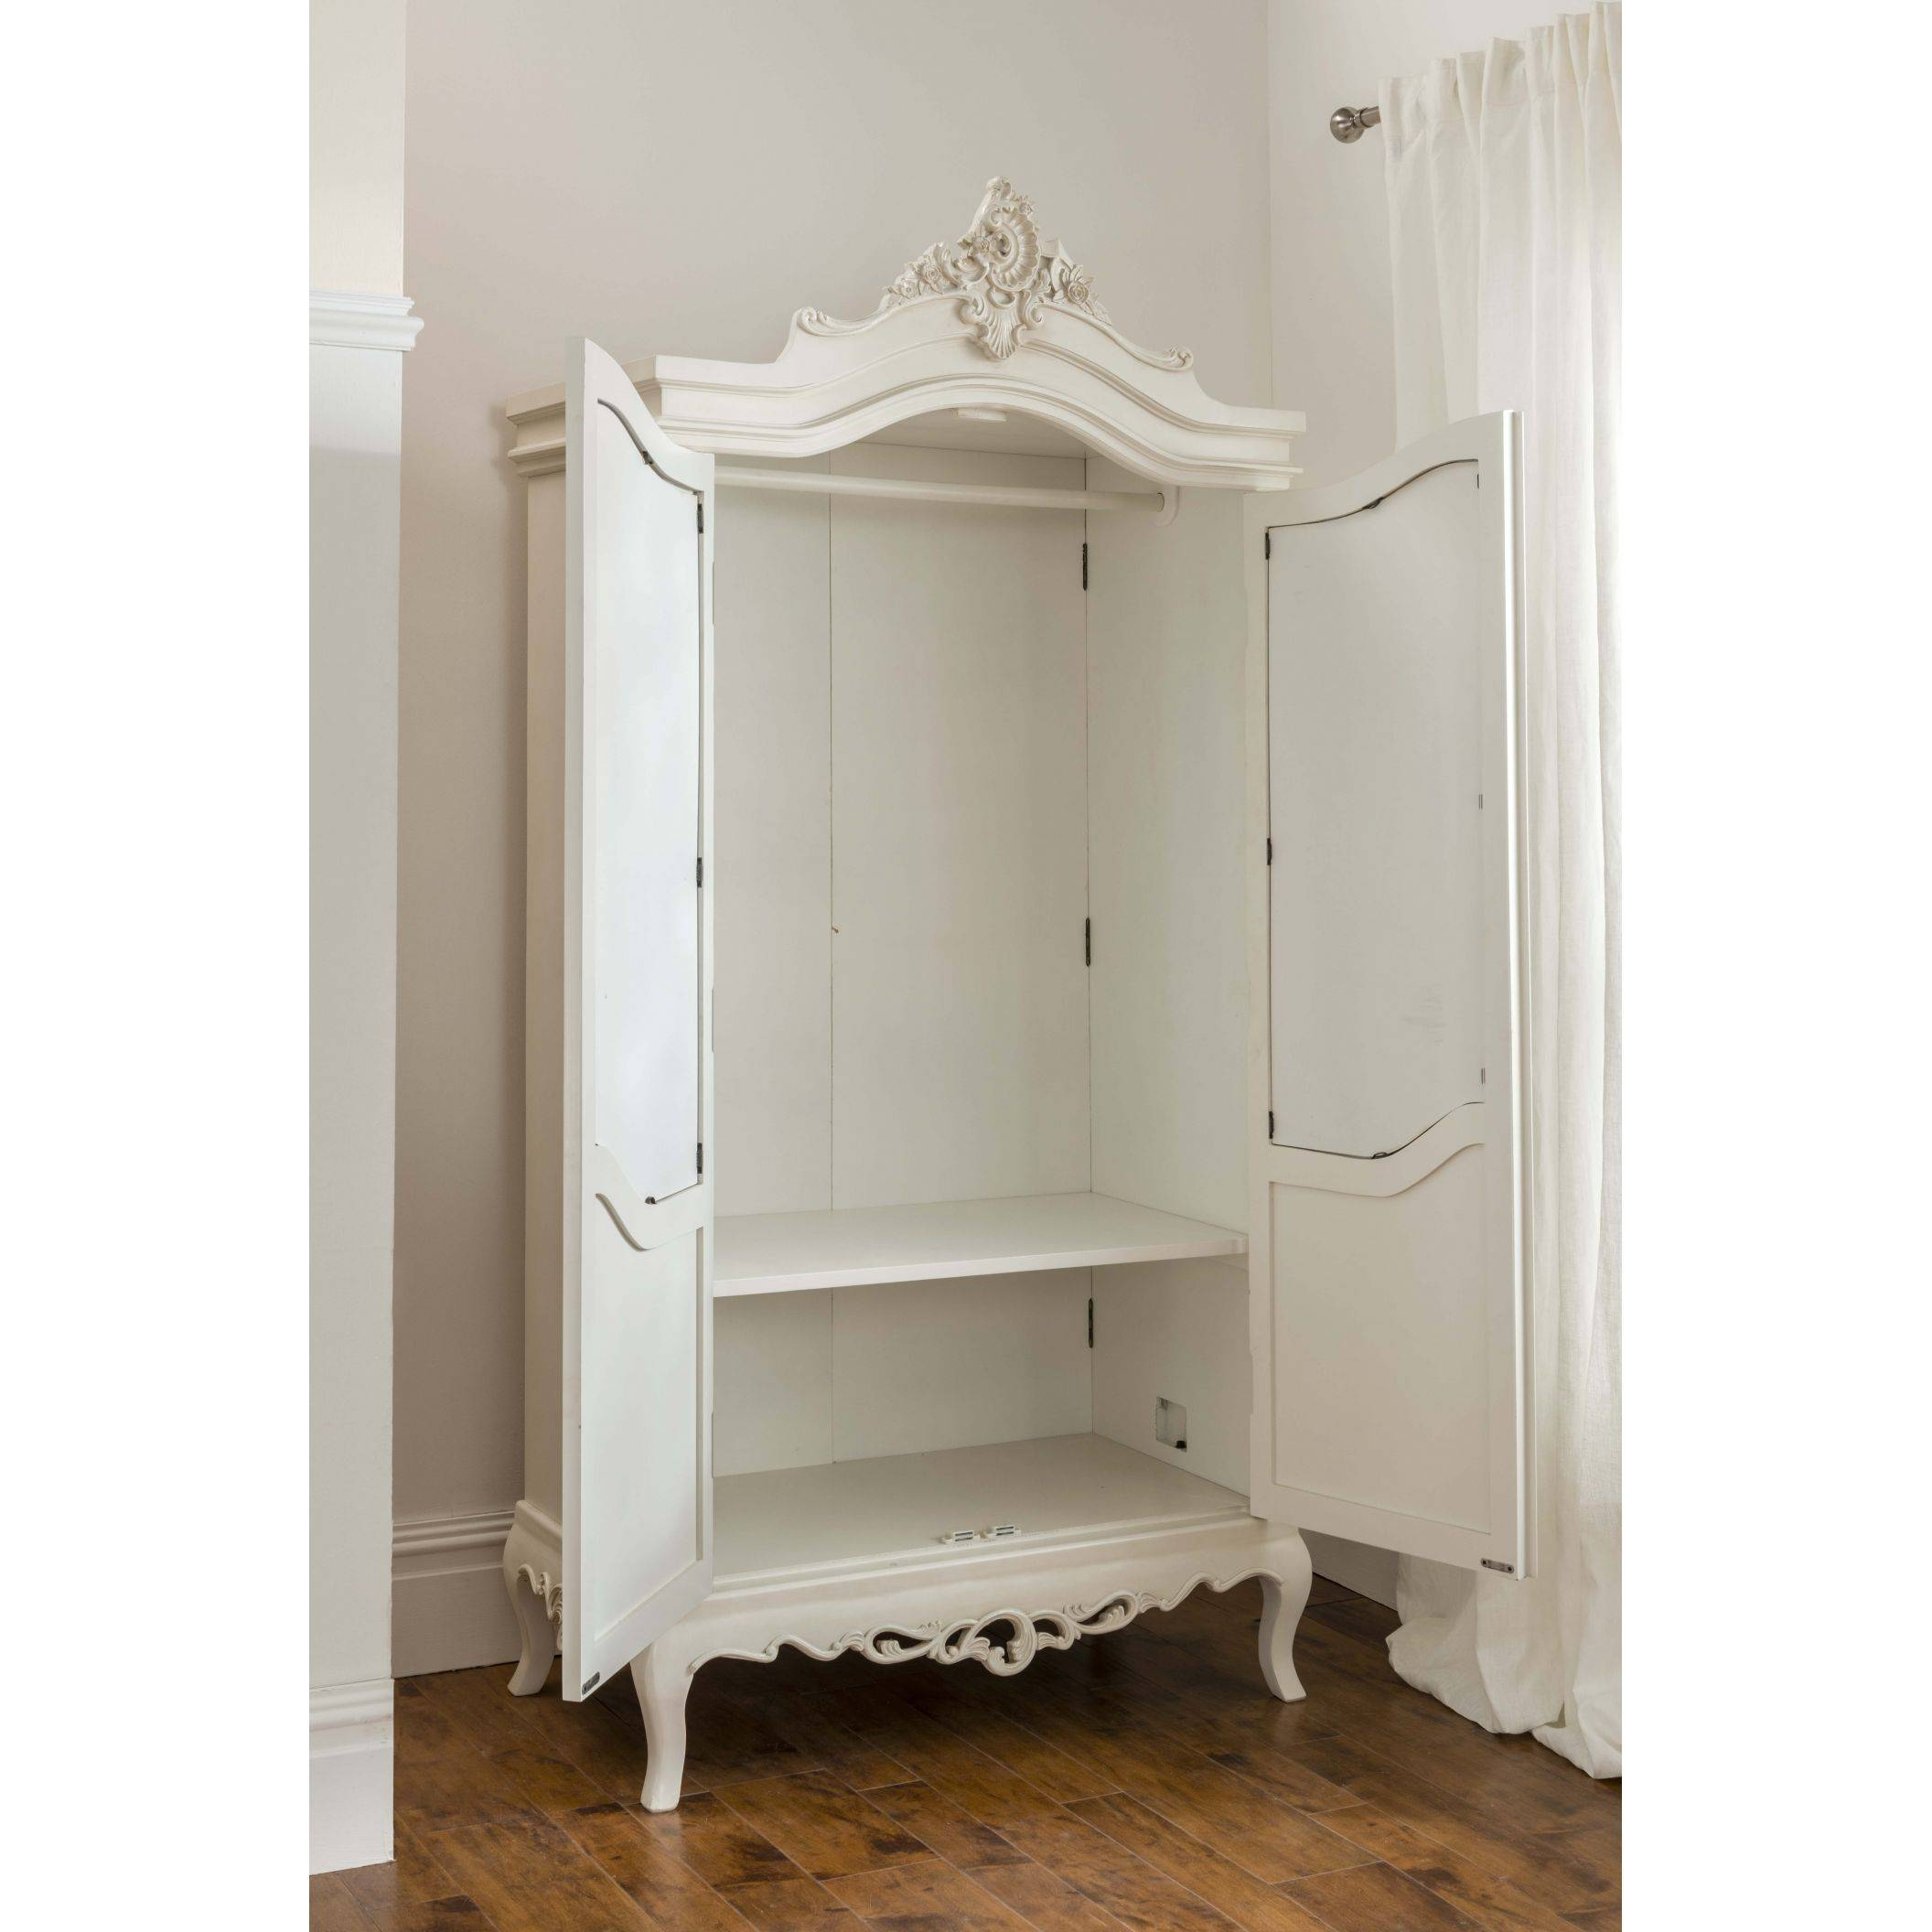 Annaelle Antique French Wardrobe in White French Style Wardrobes (Image 1 of 15)